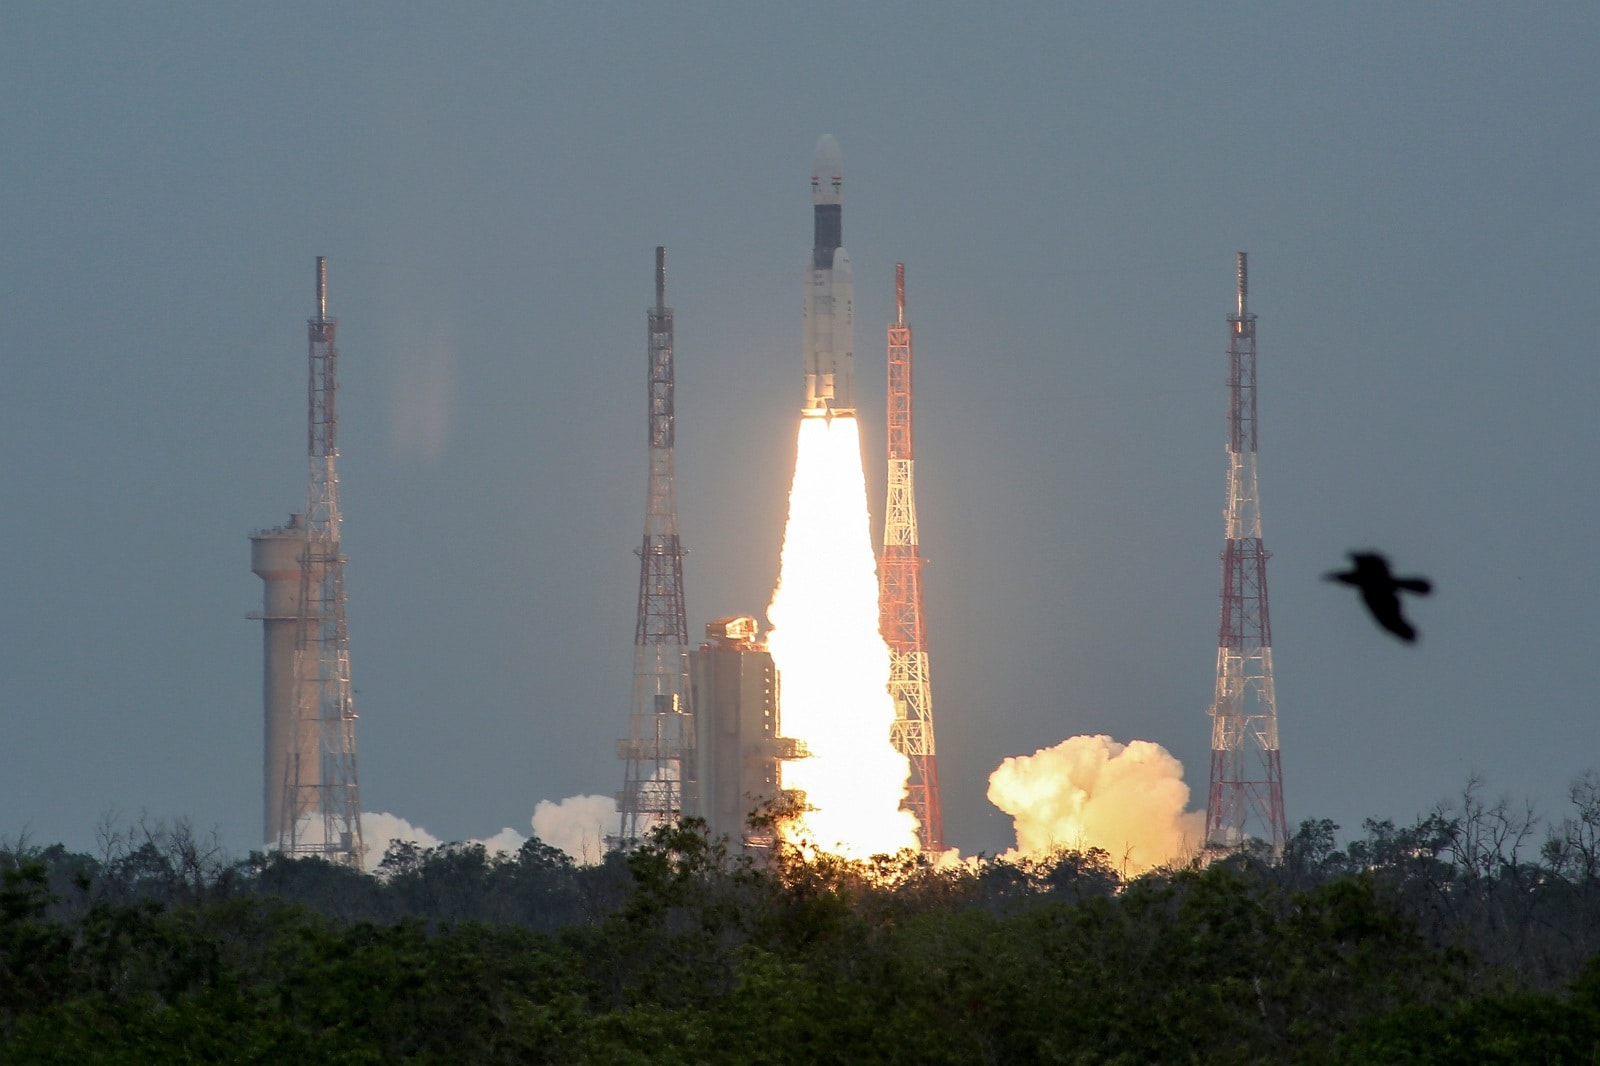 Mk III-M1 blasts off carrying Chandrayaan-2, from the Satish Dhawan Space Centre at Sriharikota, on July 22, 2019. (Reuters)